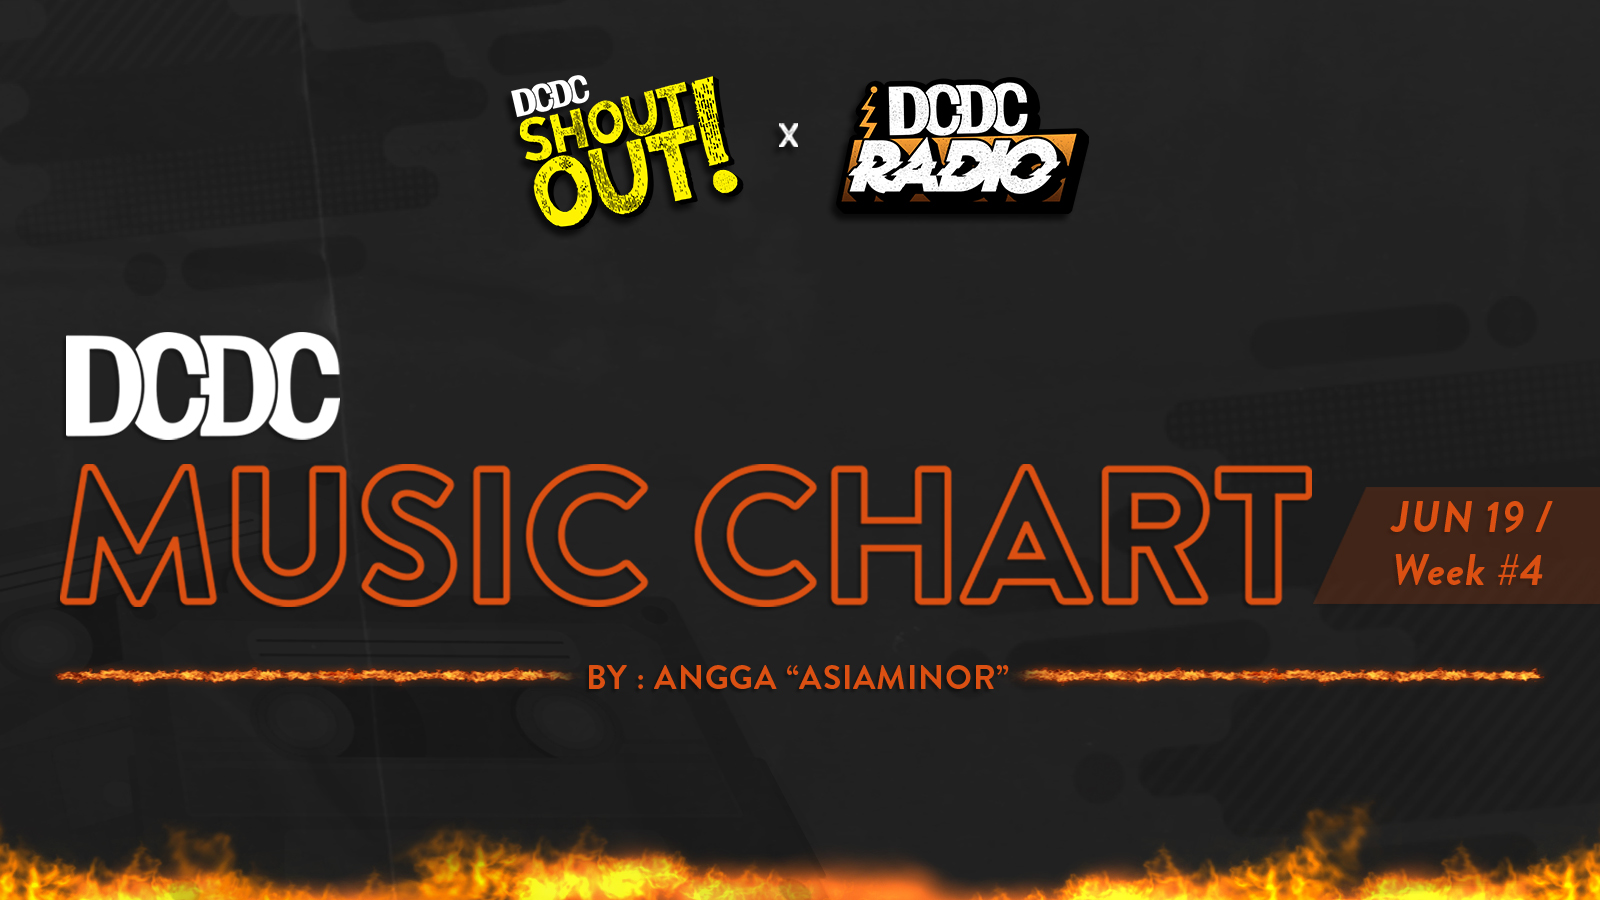 DCDC Music Chart - #4th Week of June 2019